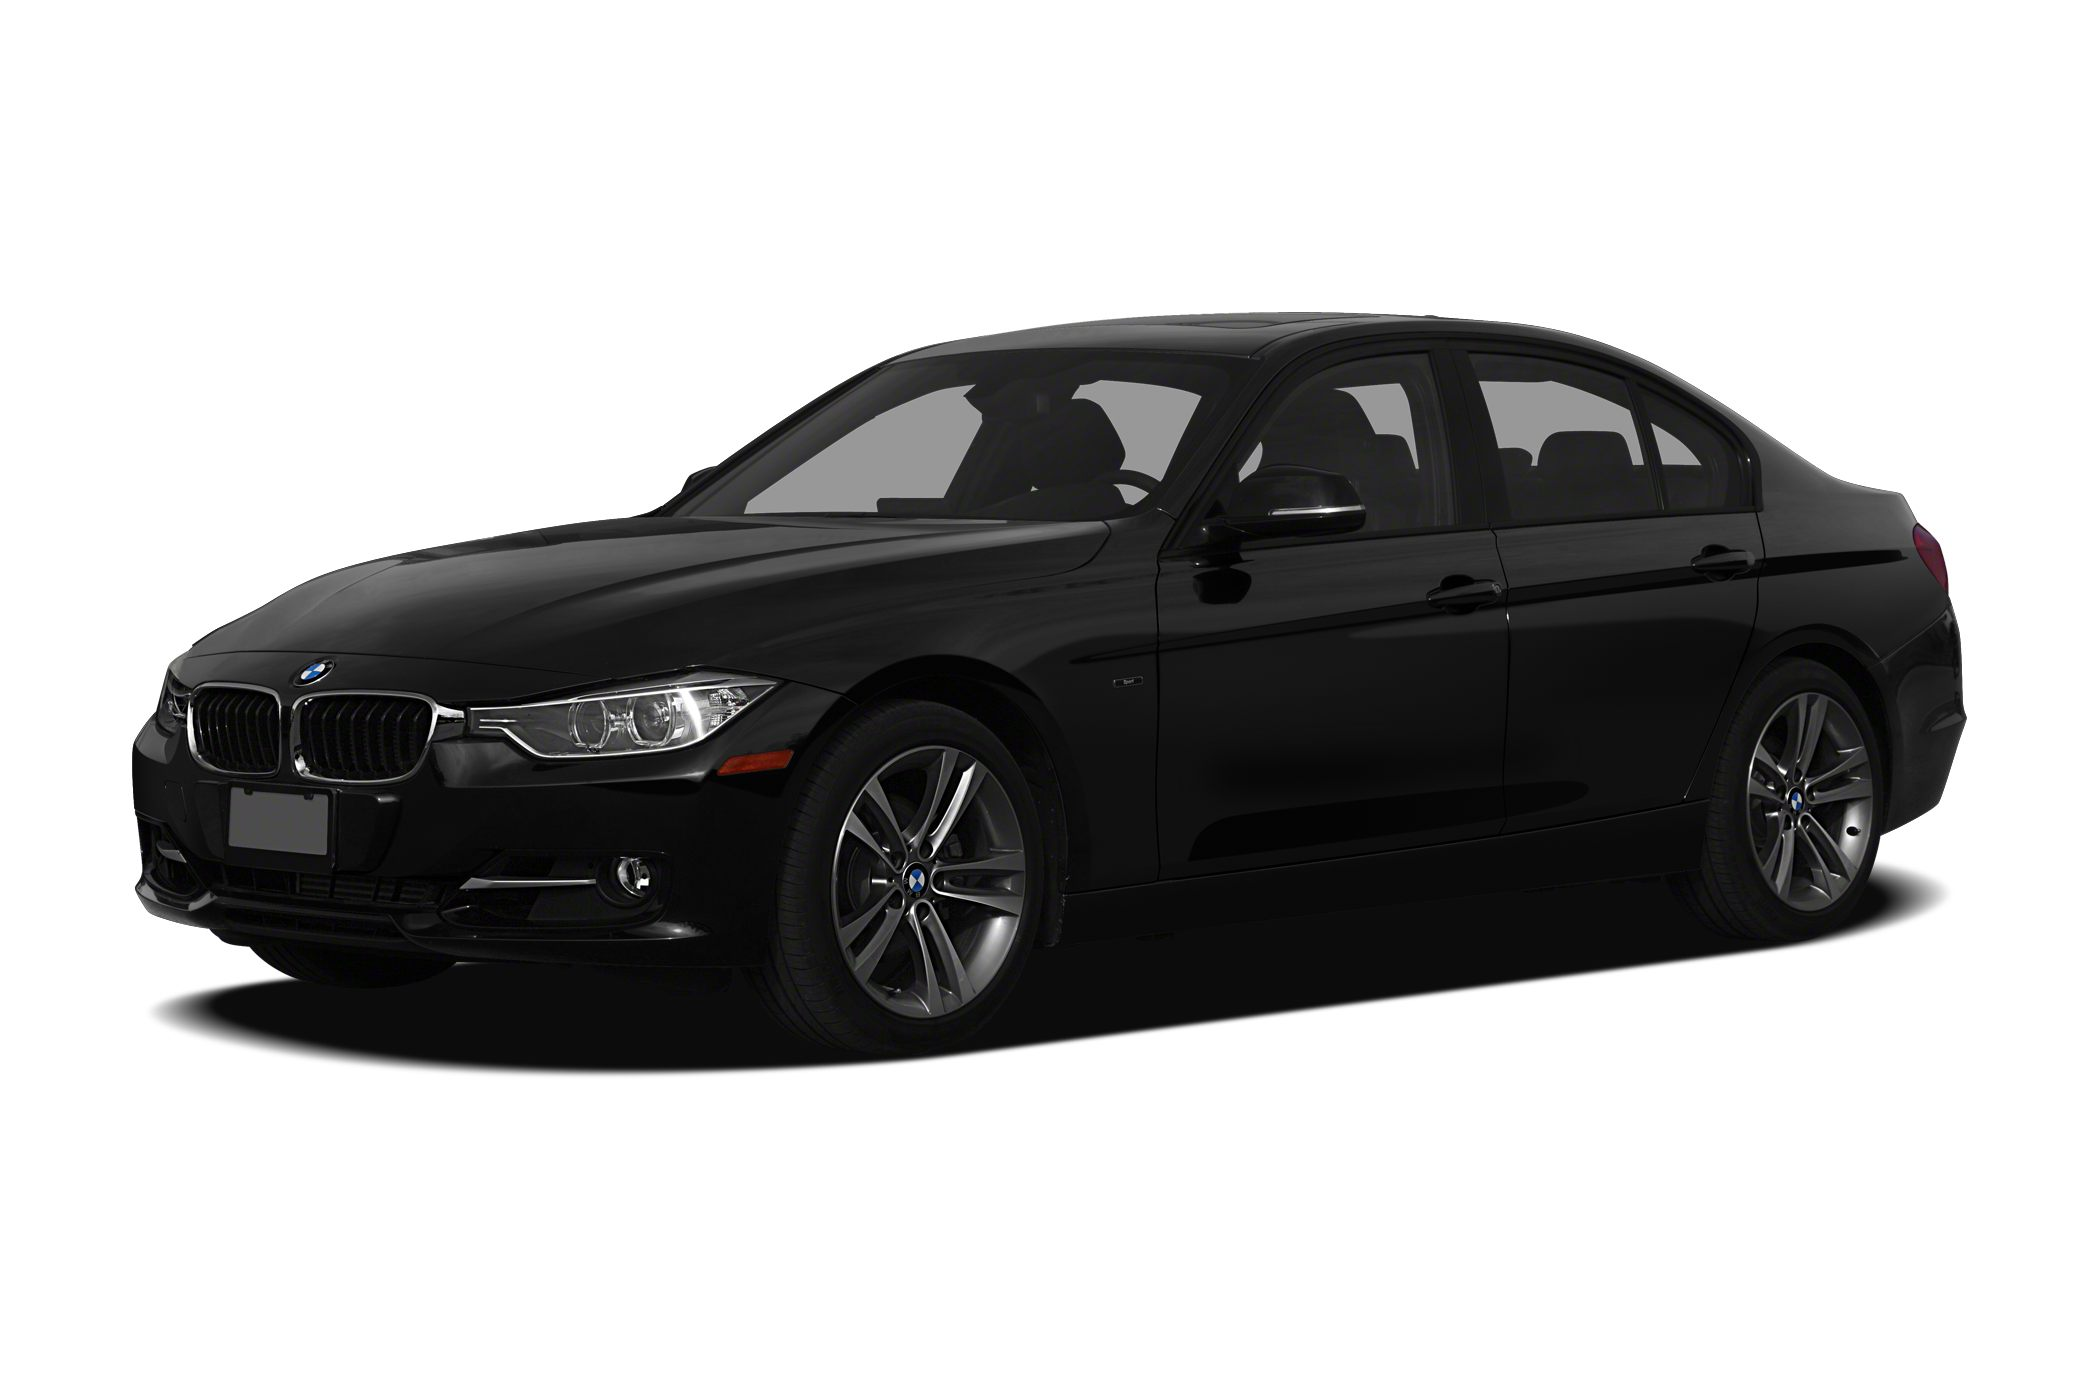 2012 BMW 328 I Sedan for sale in Shreveport for $32,500 with 43,256 miles.